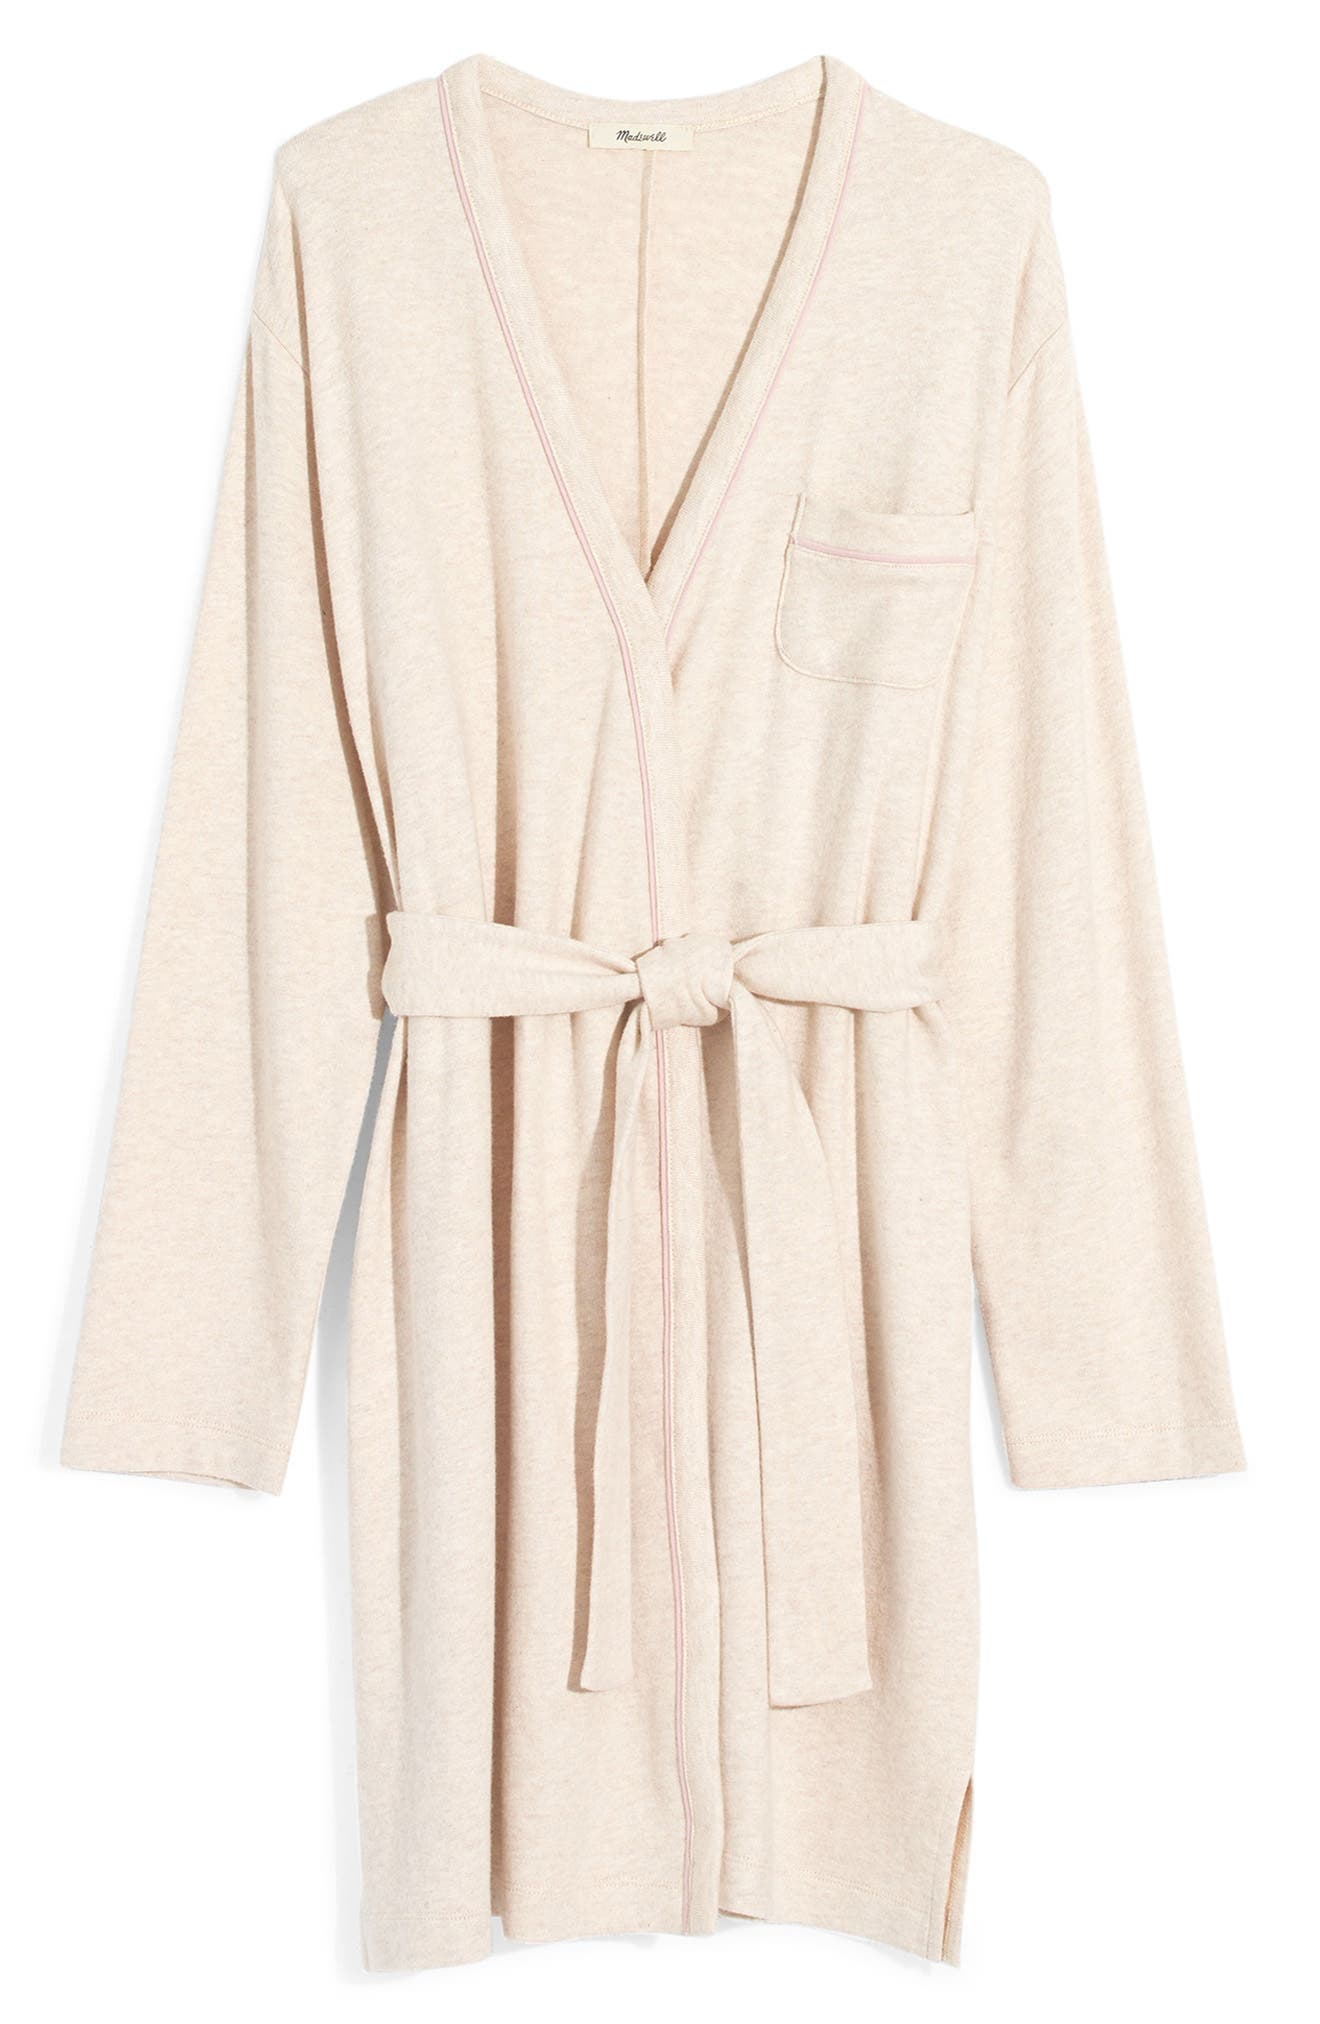 MADEWELL Tipped Robe, Main, color, 020